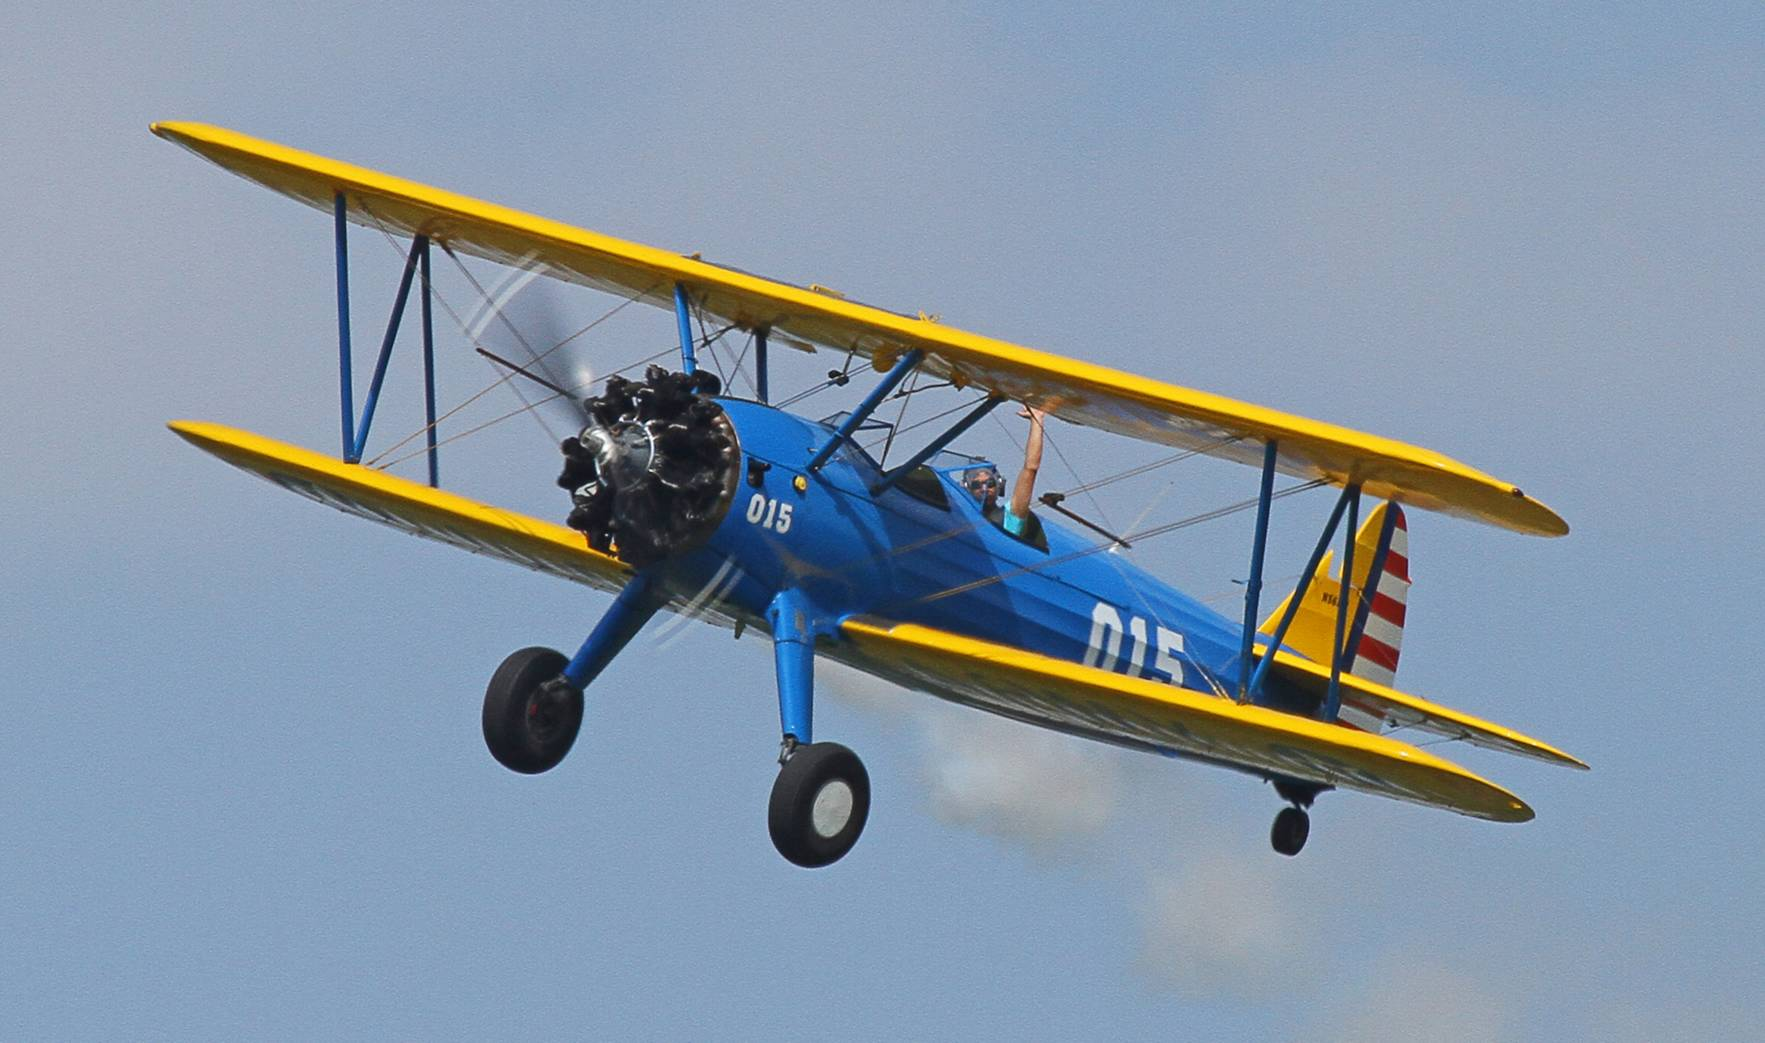 Le Boeing-Stearman PT-17 N56178 en 2012(Photo philippematon (CC BY-NC-ND 2.0))